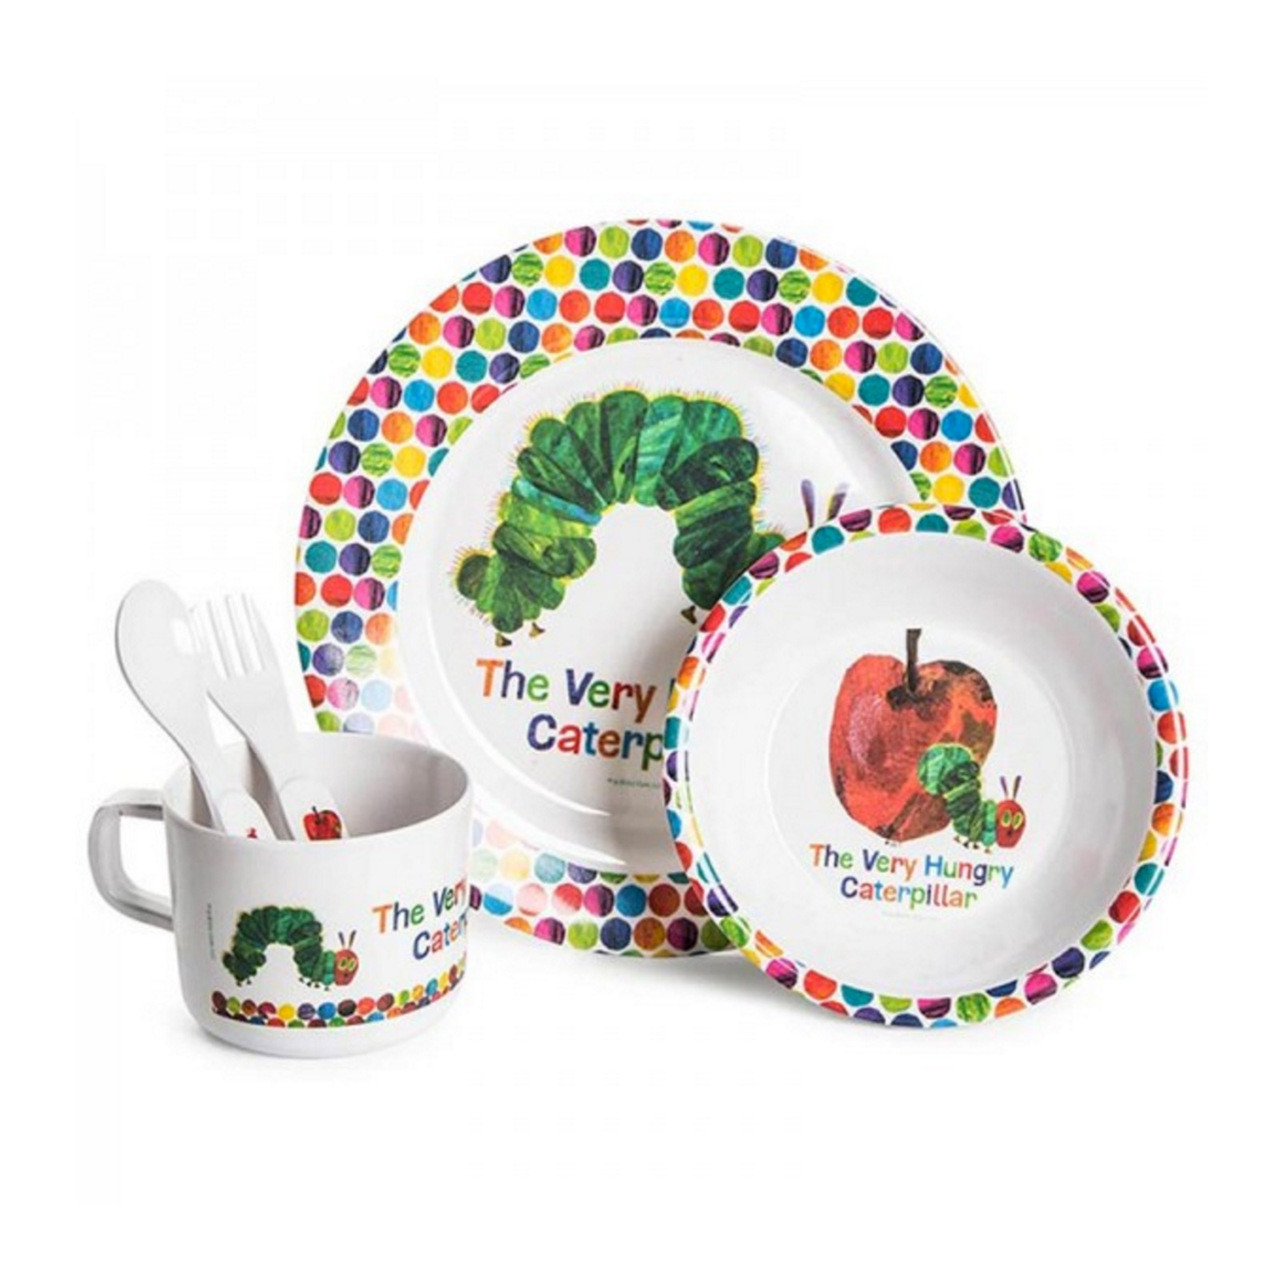 The Very Hungry Caterpillar 5 Piece Dinner Set Buy Cute Toddler